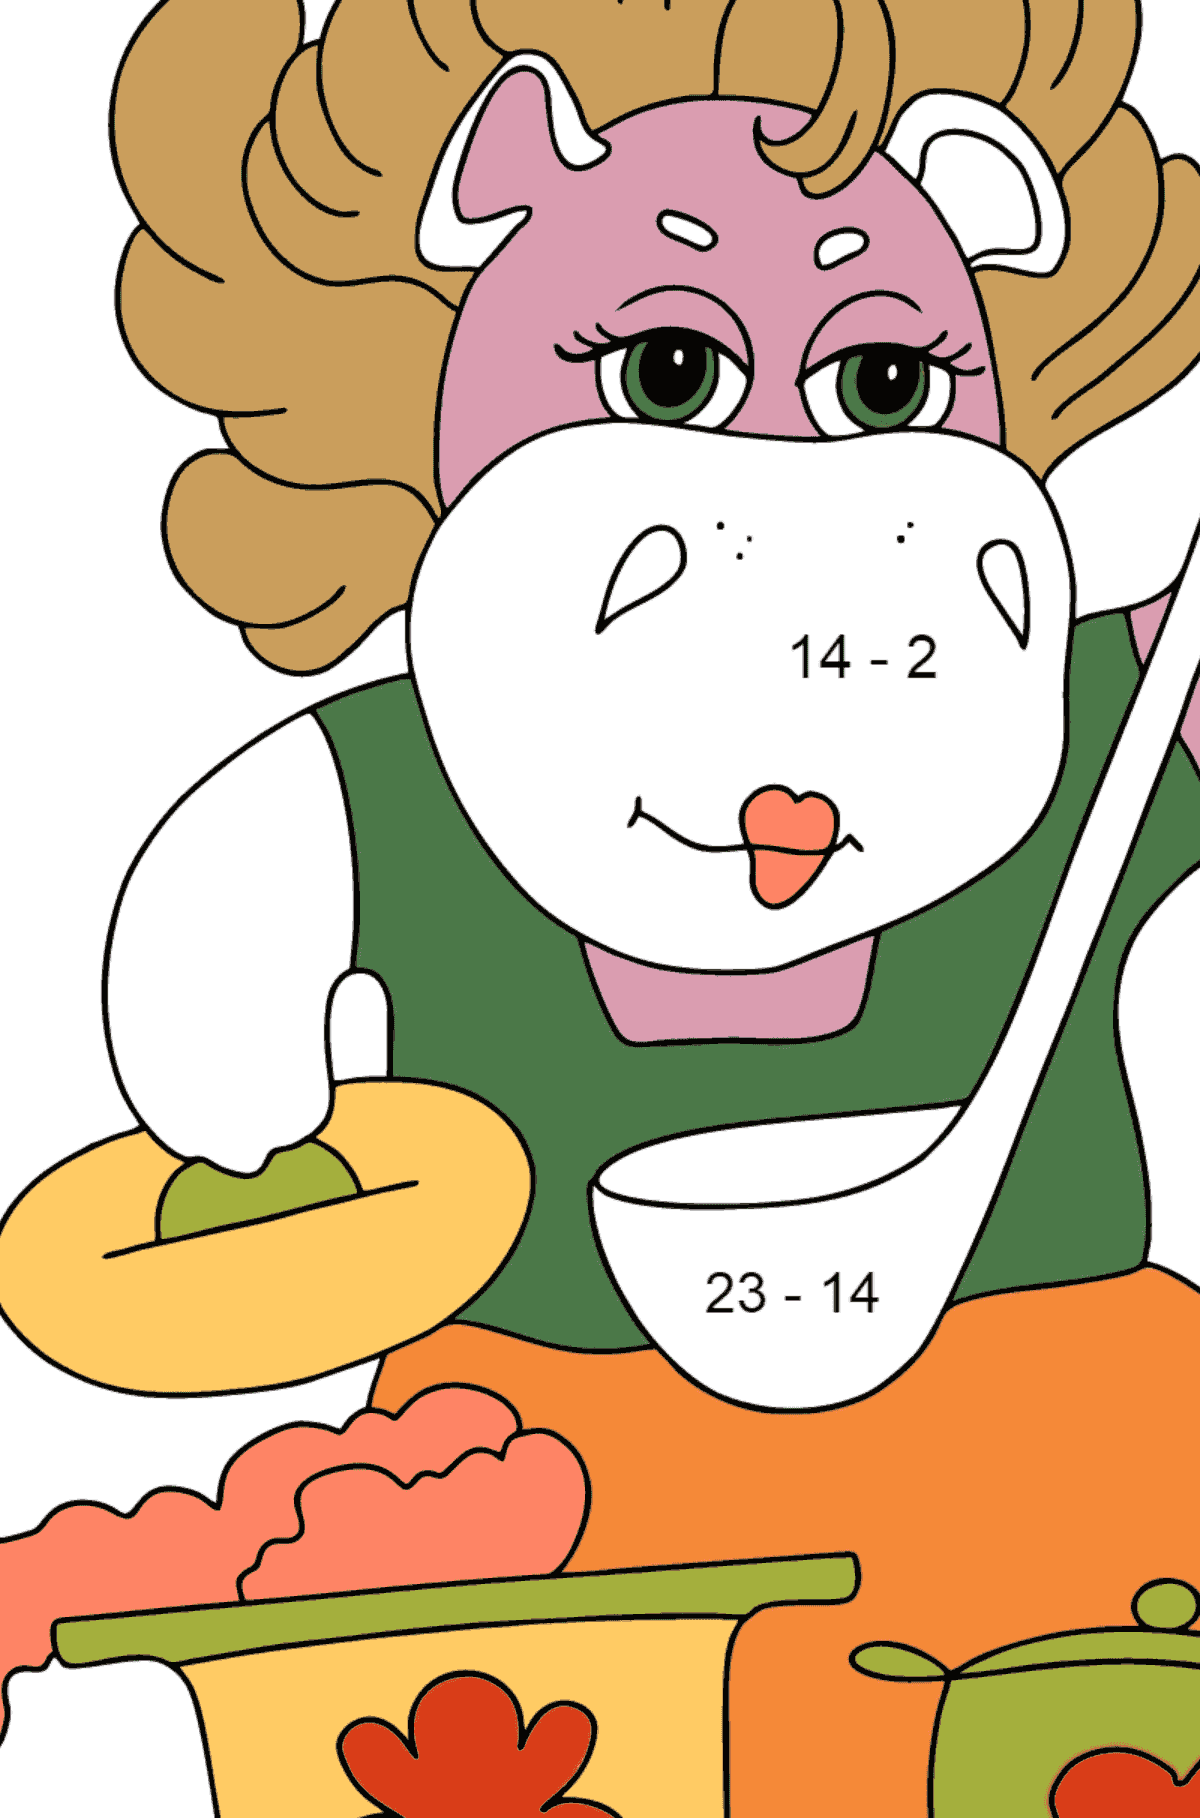 Coloring Page - A Hippo is Cooking Tasty Soup for Children  - Color by Number Substraction